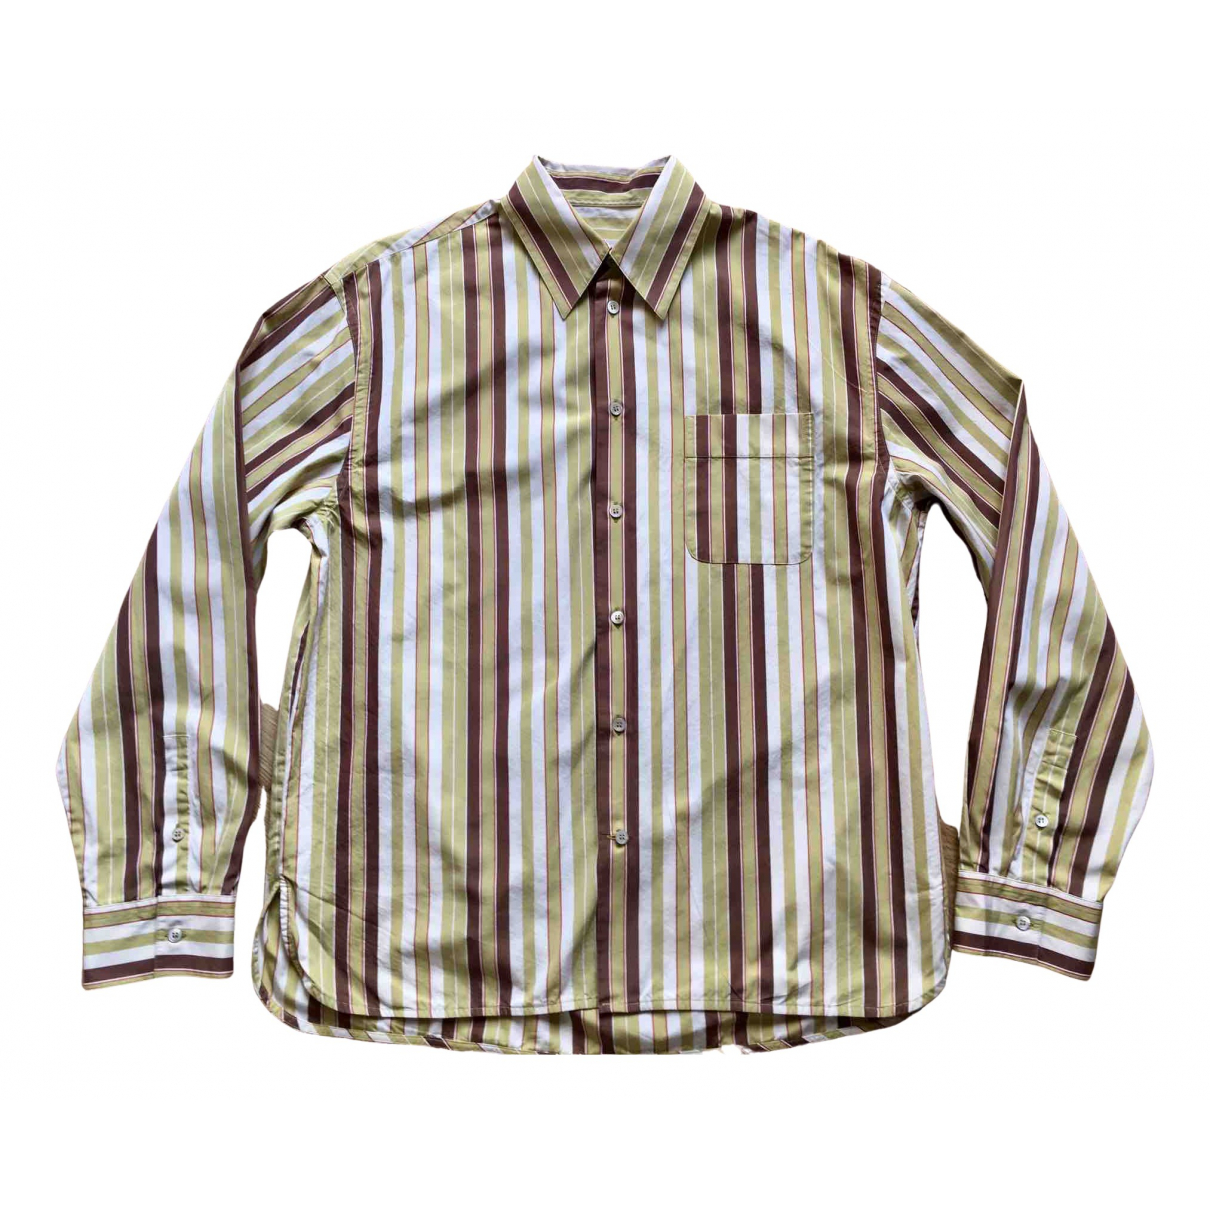 Marni \N Multicolour Cotton Shirts for Men M International